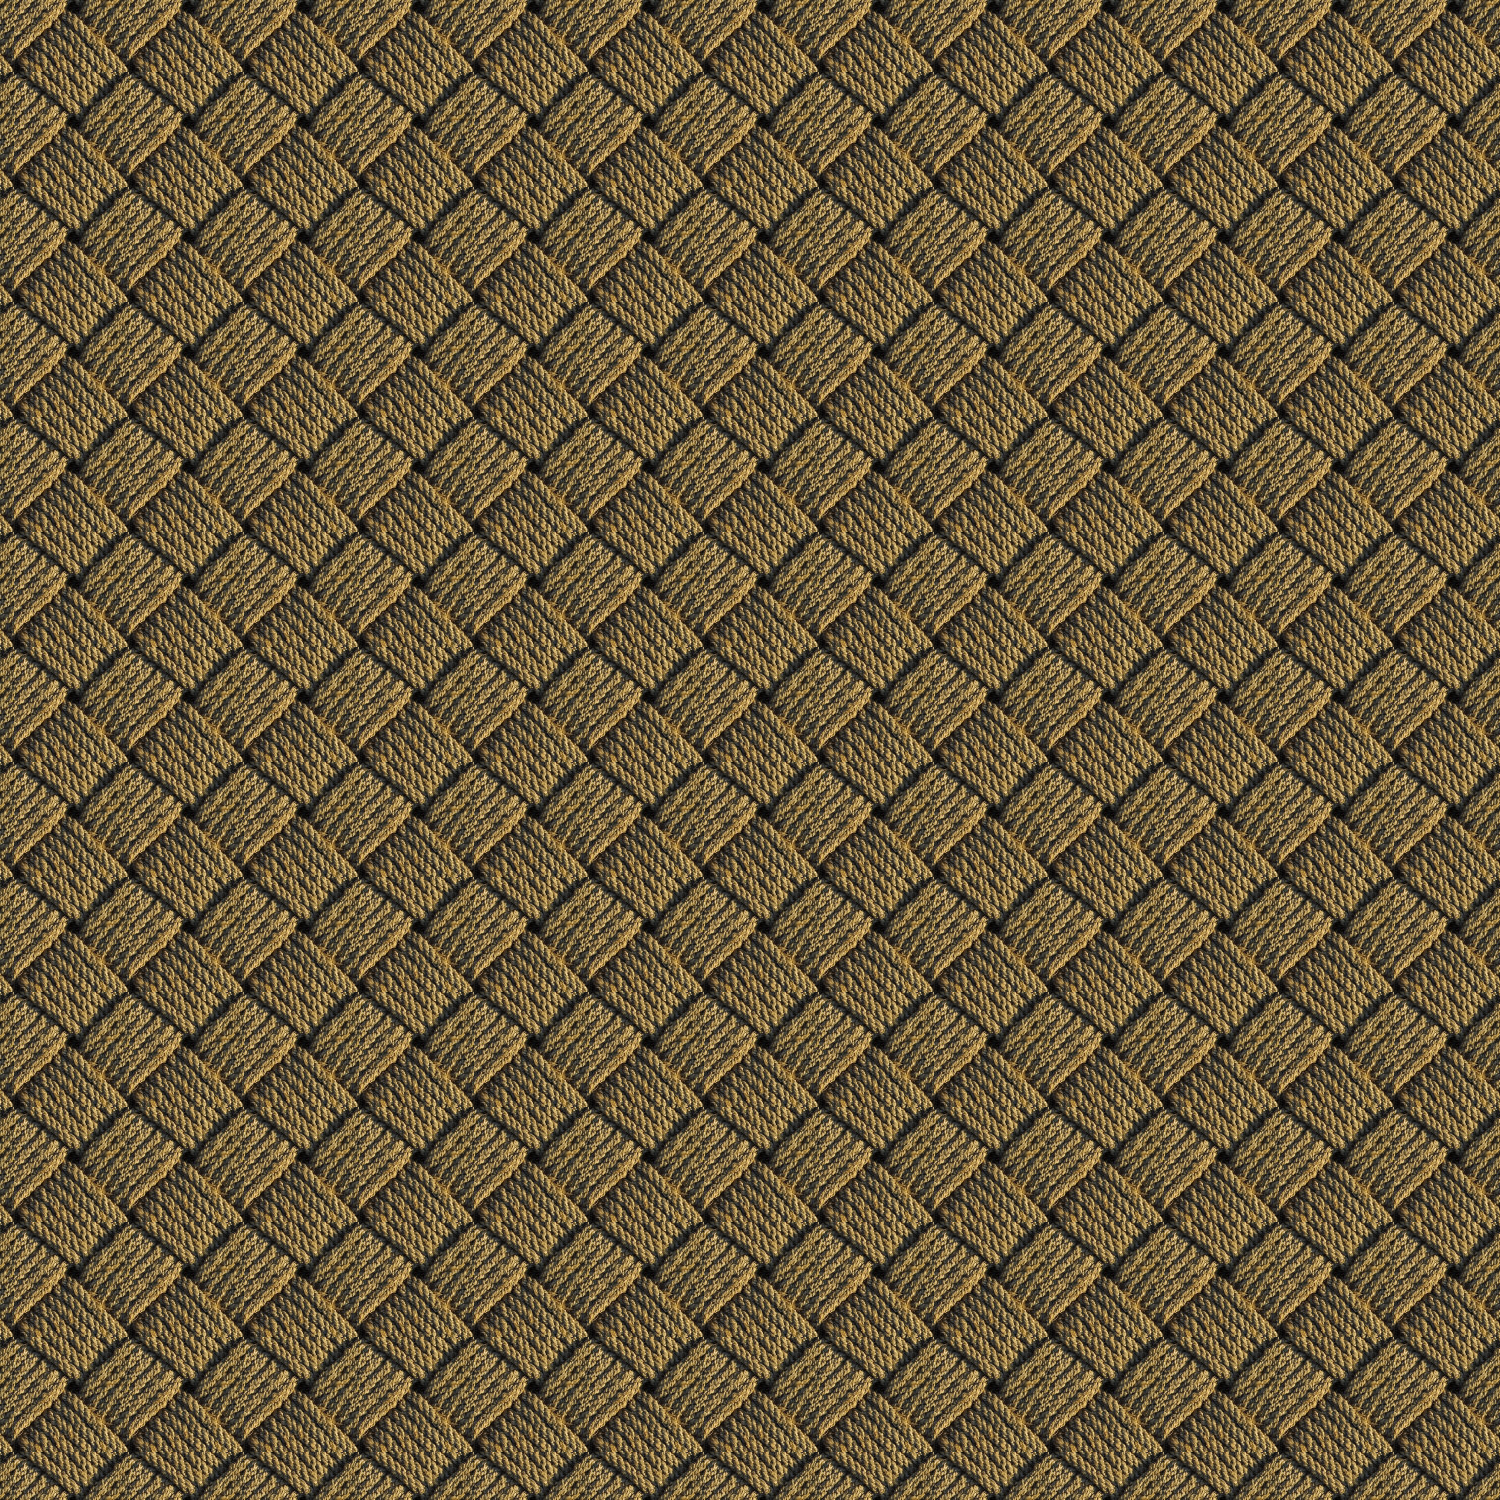 Rope Texture Pattern